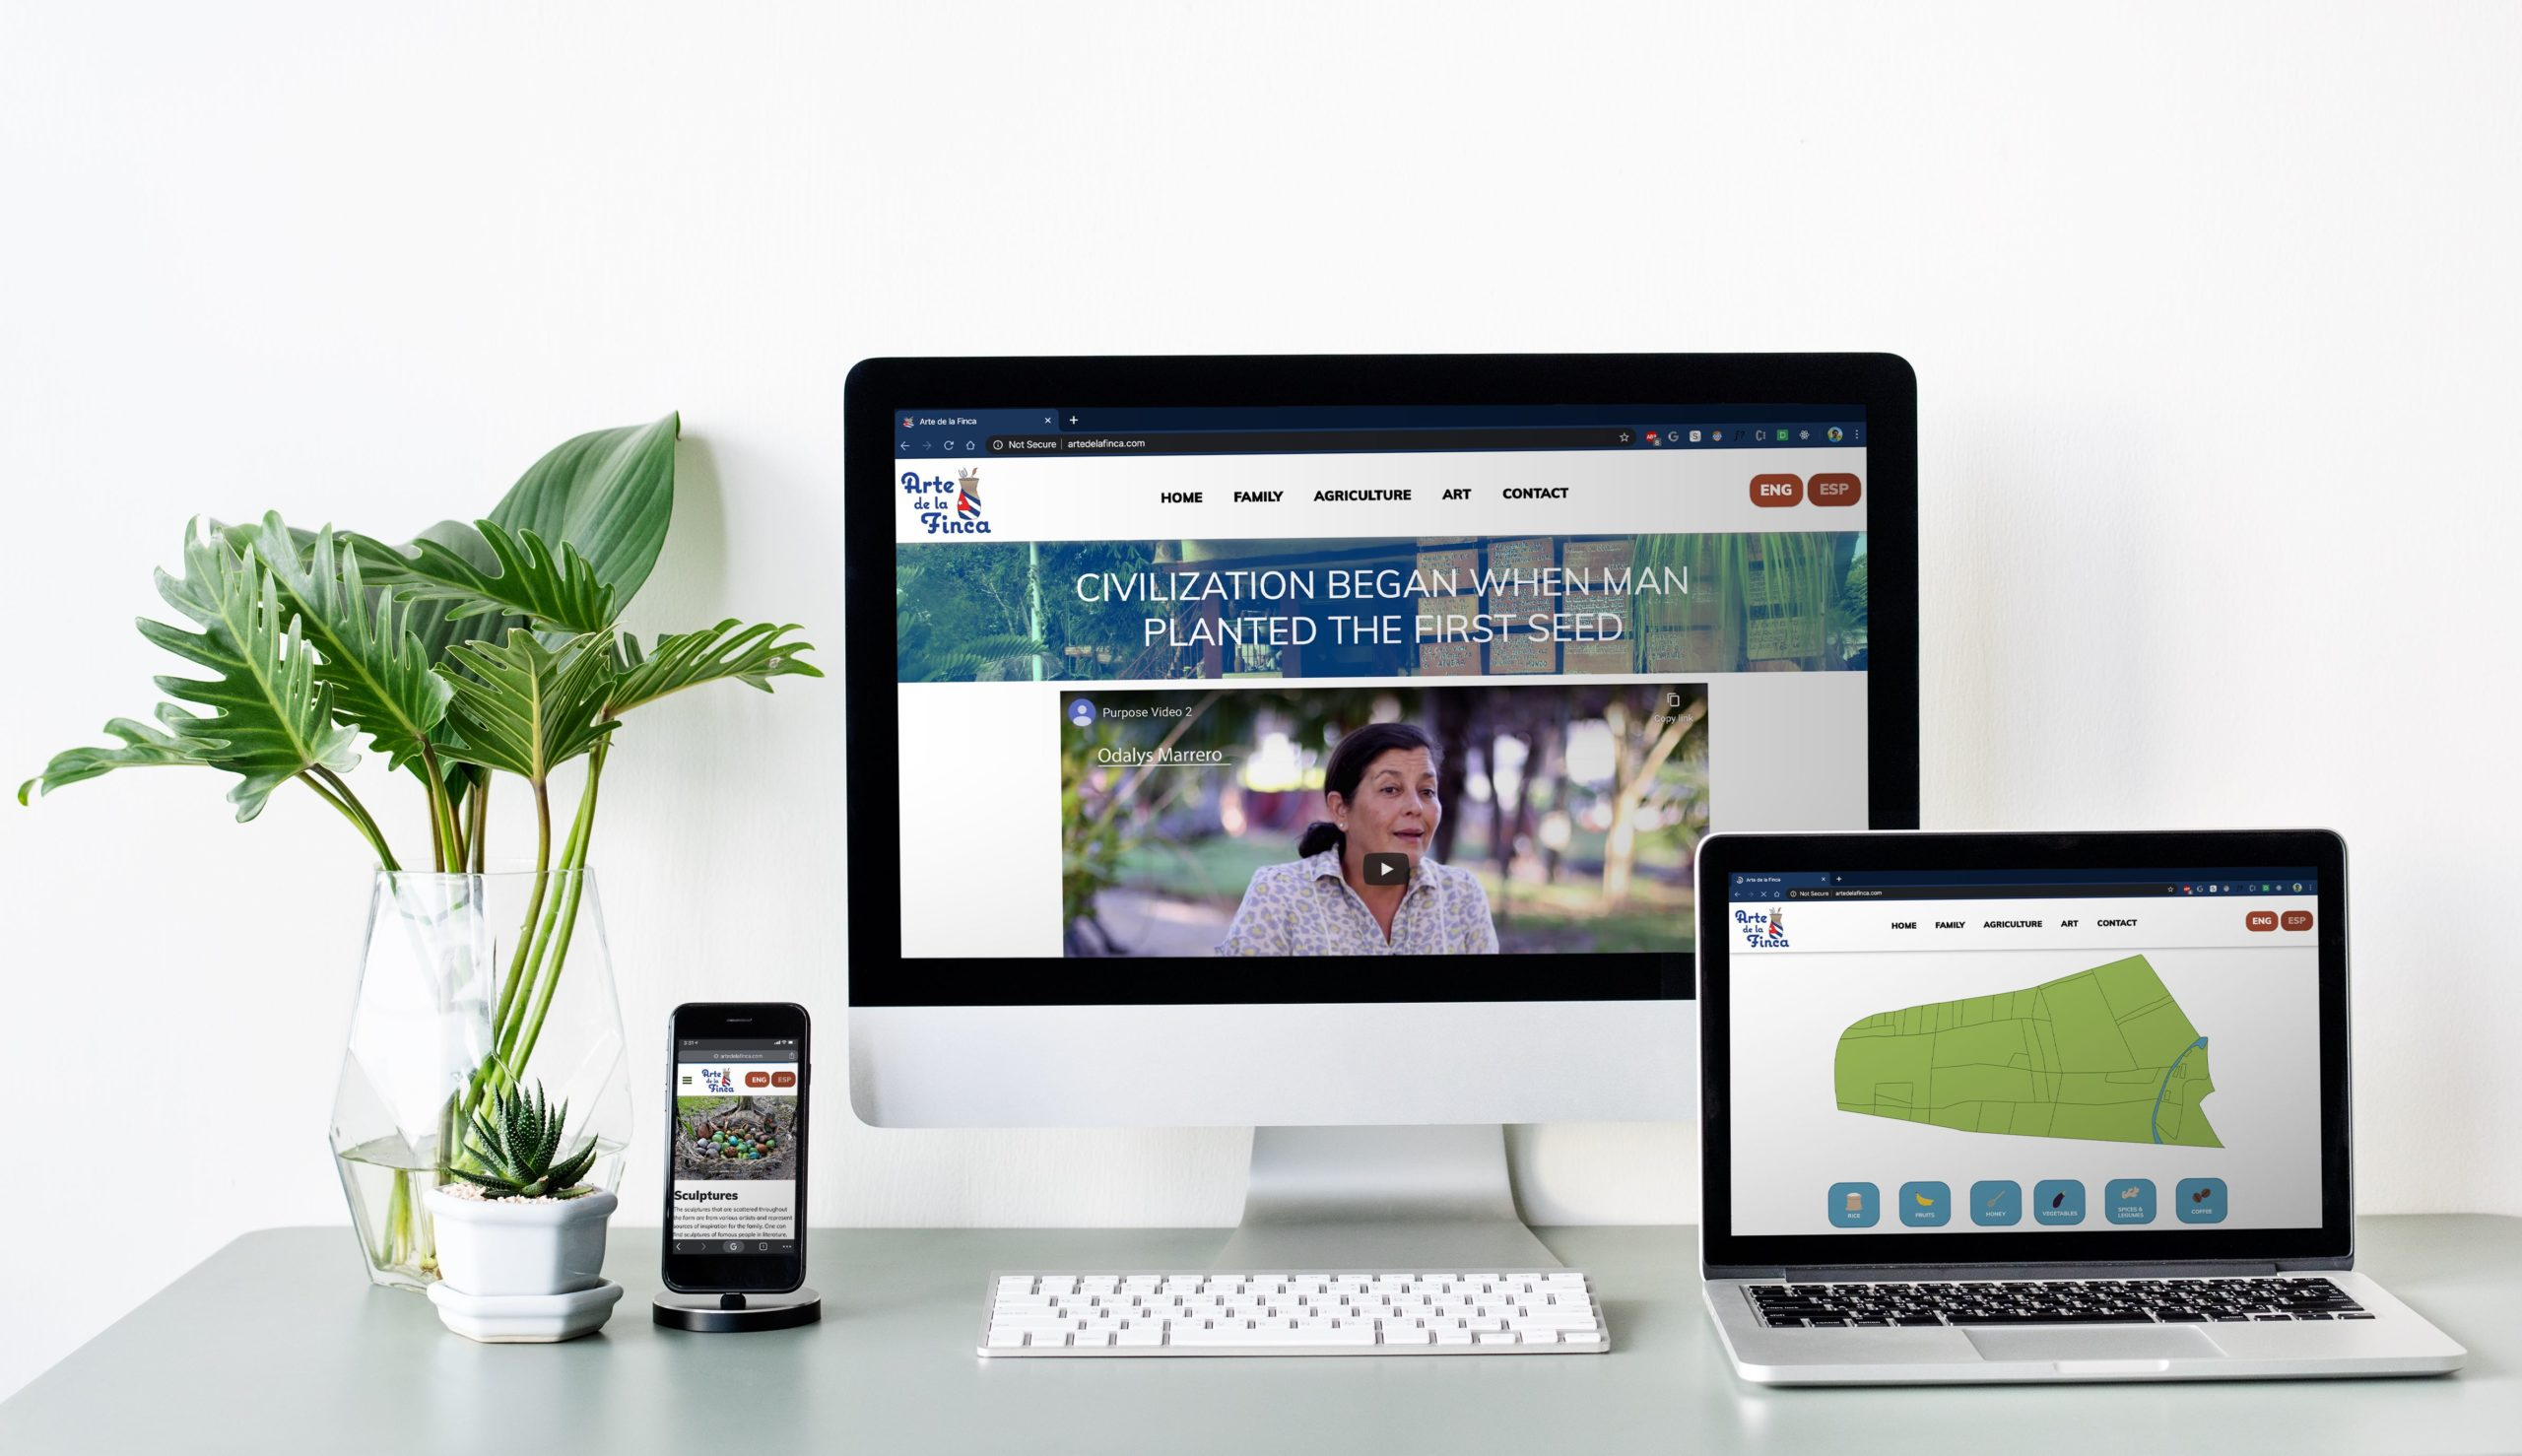 A website mockup being shown on an iMac, a MacBook, and an iPhone on a silver desk next to a large green plant.